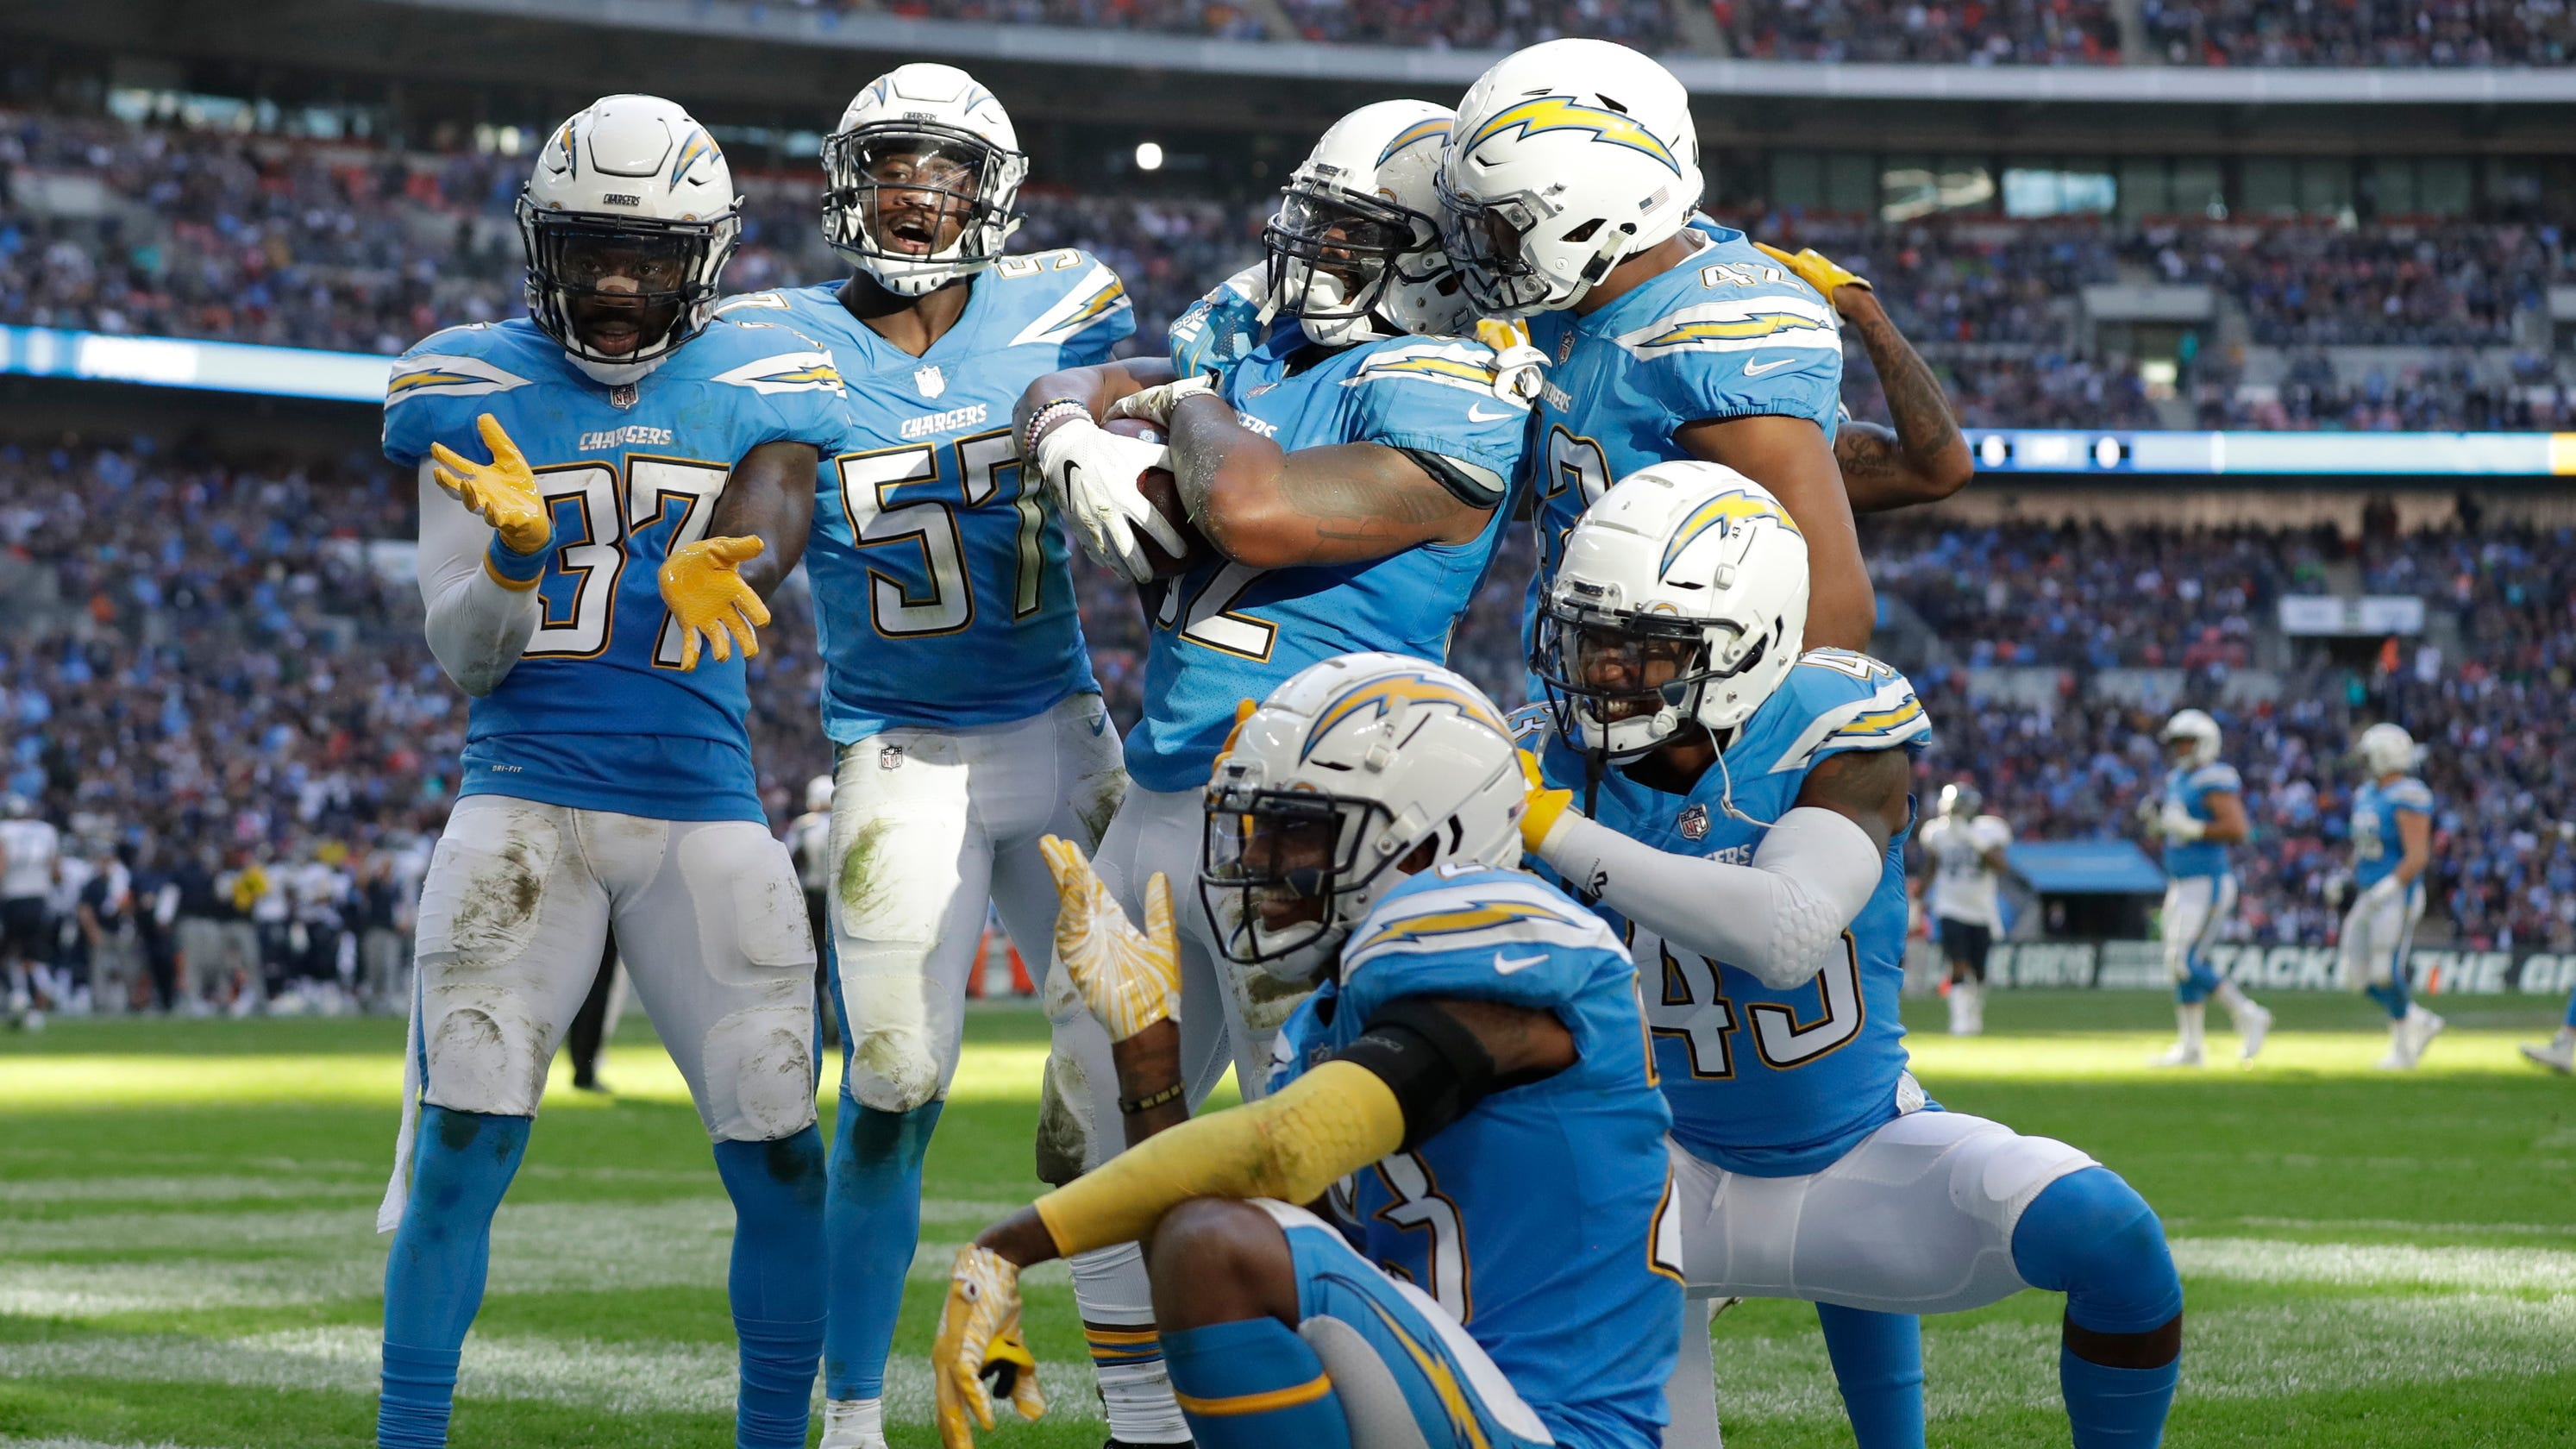 meet 85913 e4b7f LA Chargers: Team will wear iconic powder blue uniforms in 2019